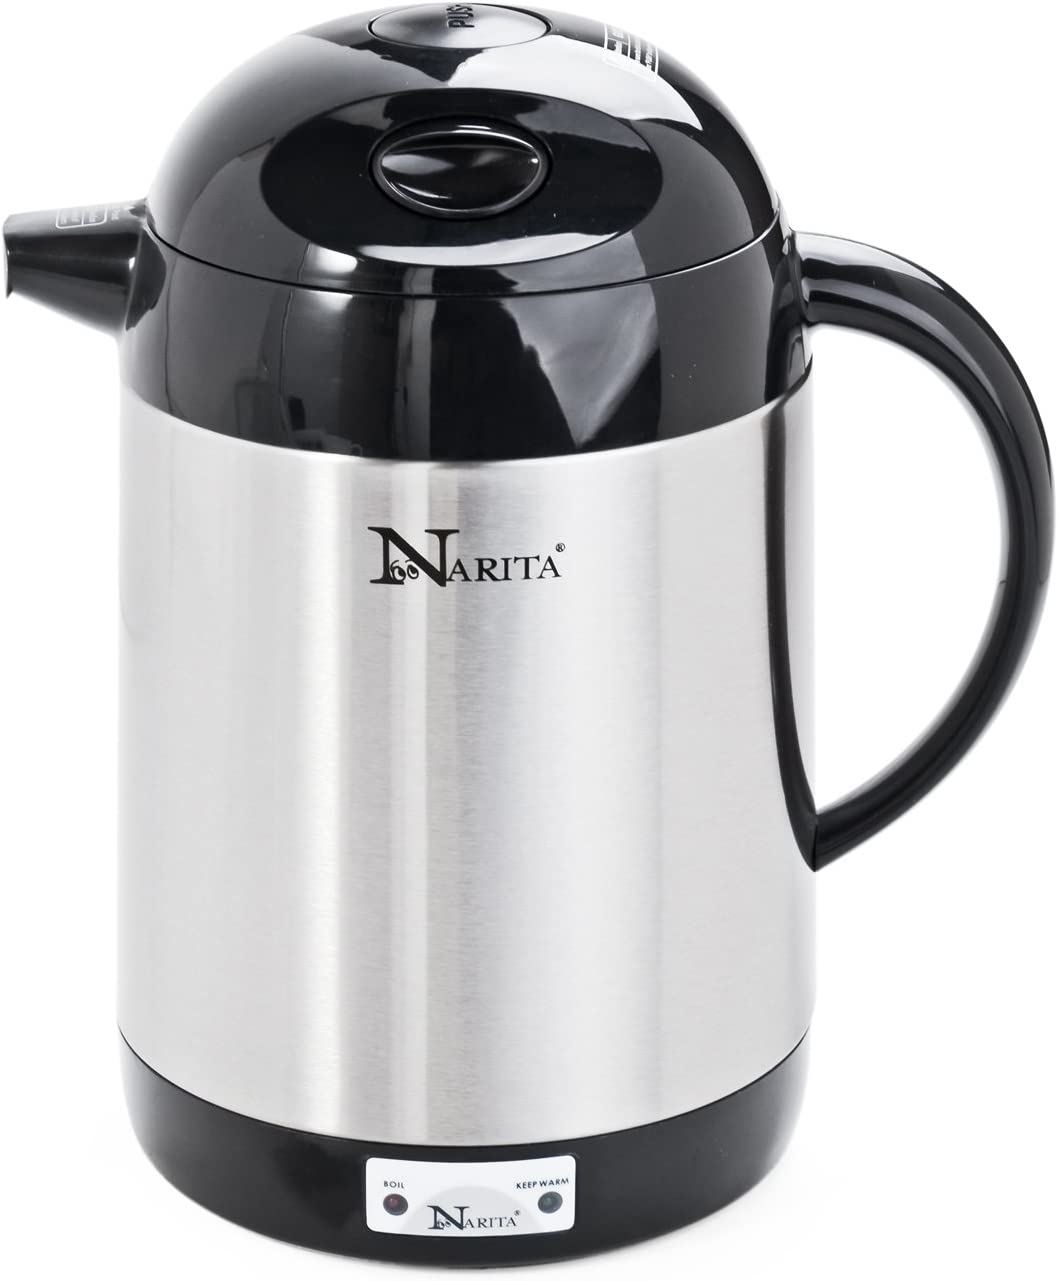 Cordless 1.5 L Electric Kettle (Stainless Steel)